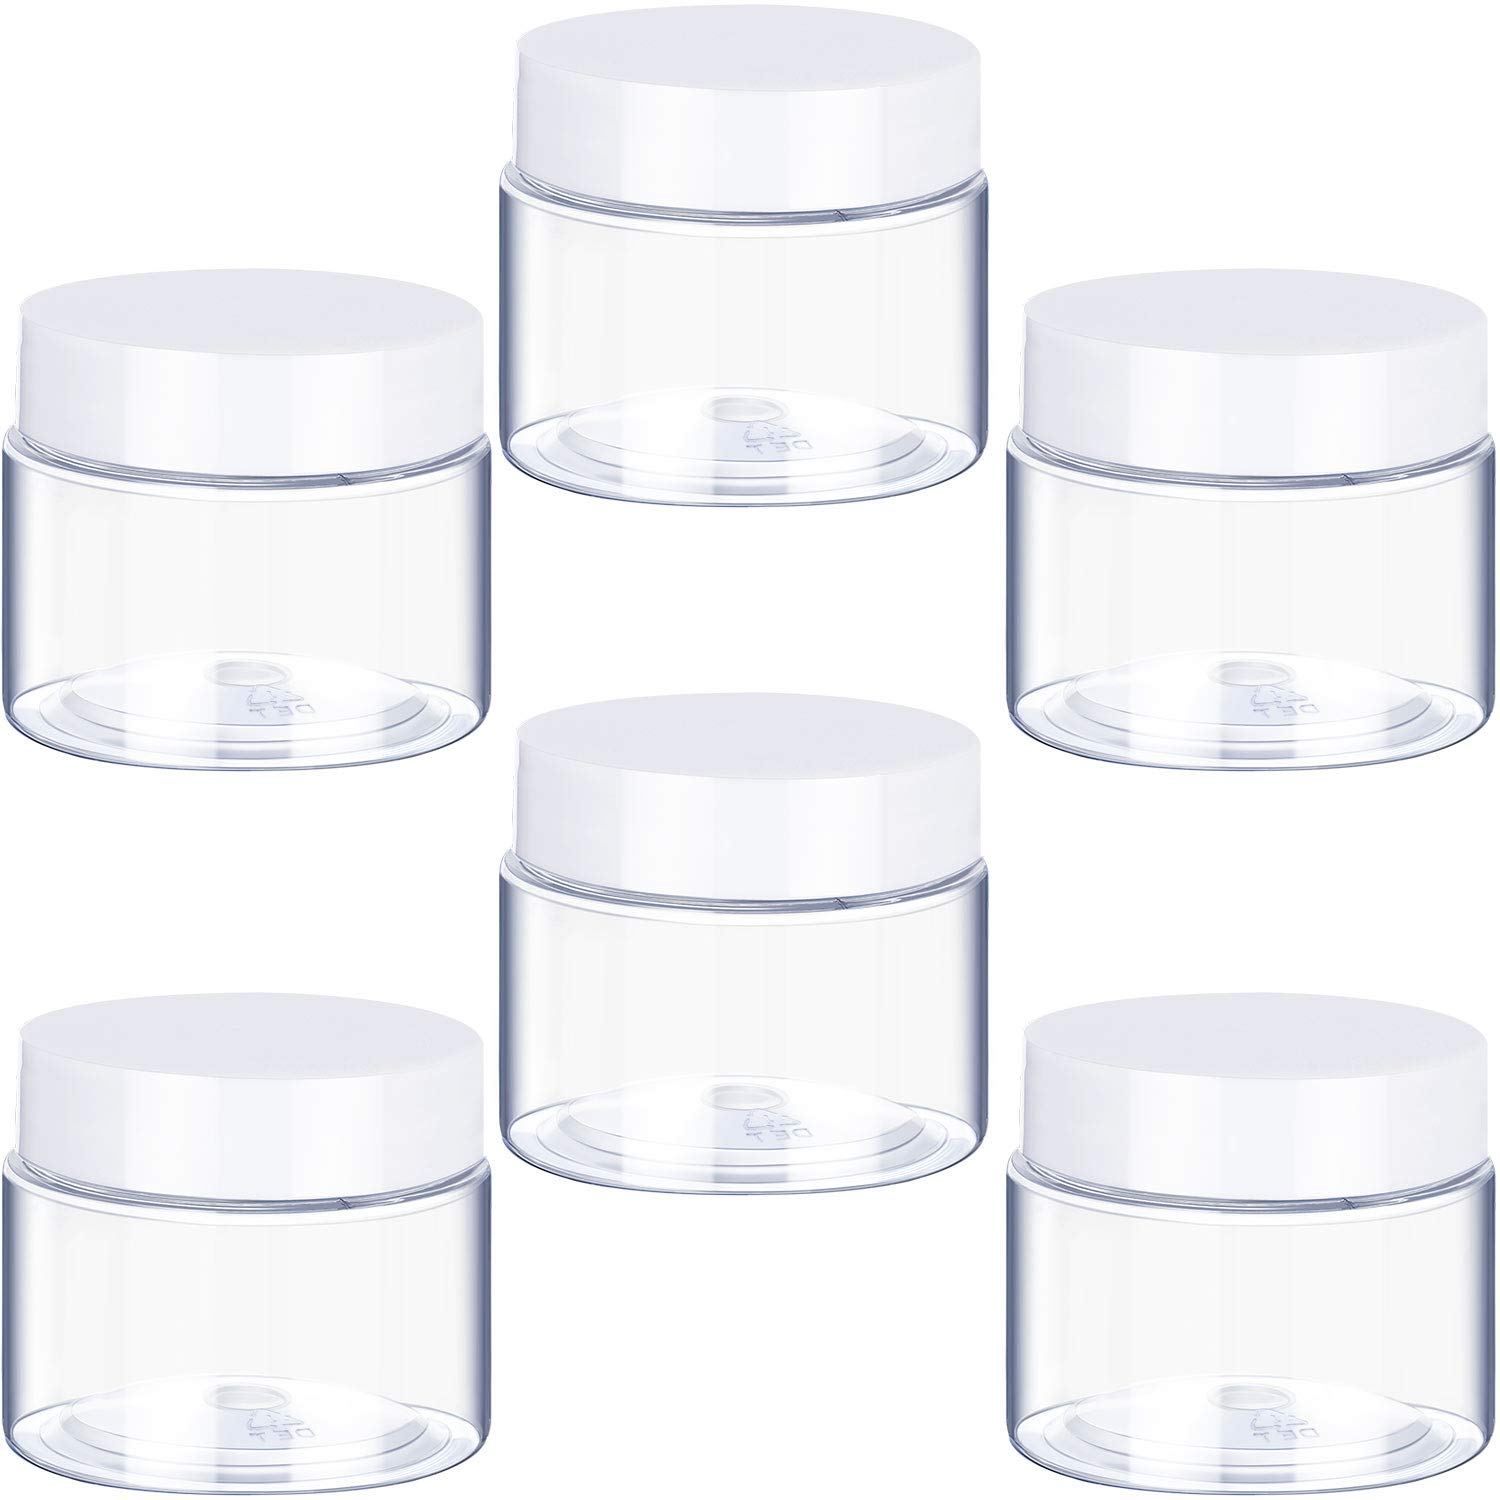 6 Pack 1 oz Plastic Pot Jars Round Clear Leak Proof Plastic Cosmetic Container Jars with White Lids for Travel Storage Make Up, Eye Shadow, Nails, Powder, Paint, Jewelry(1 oz)